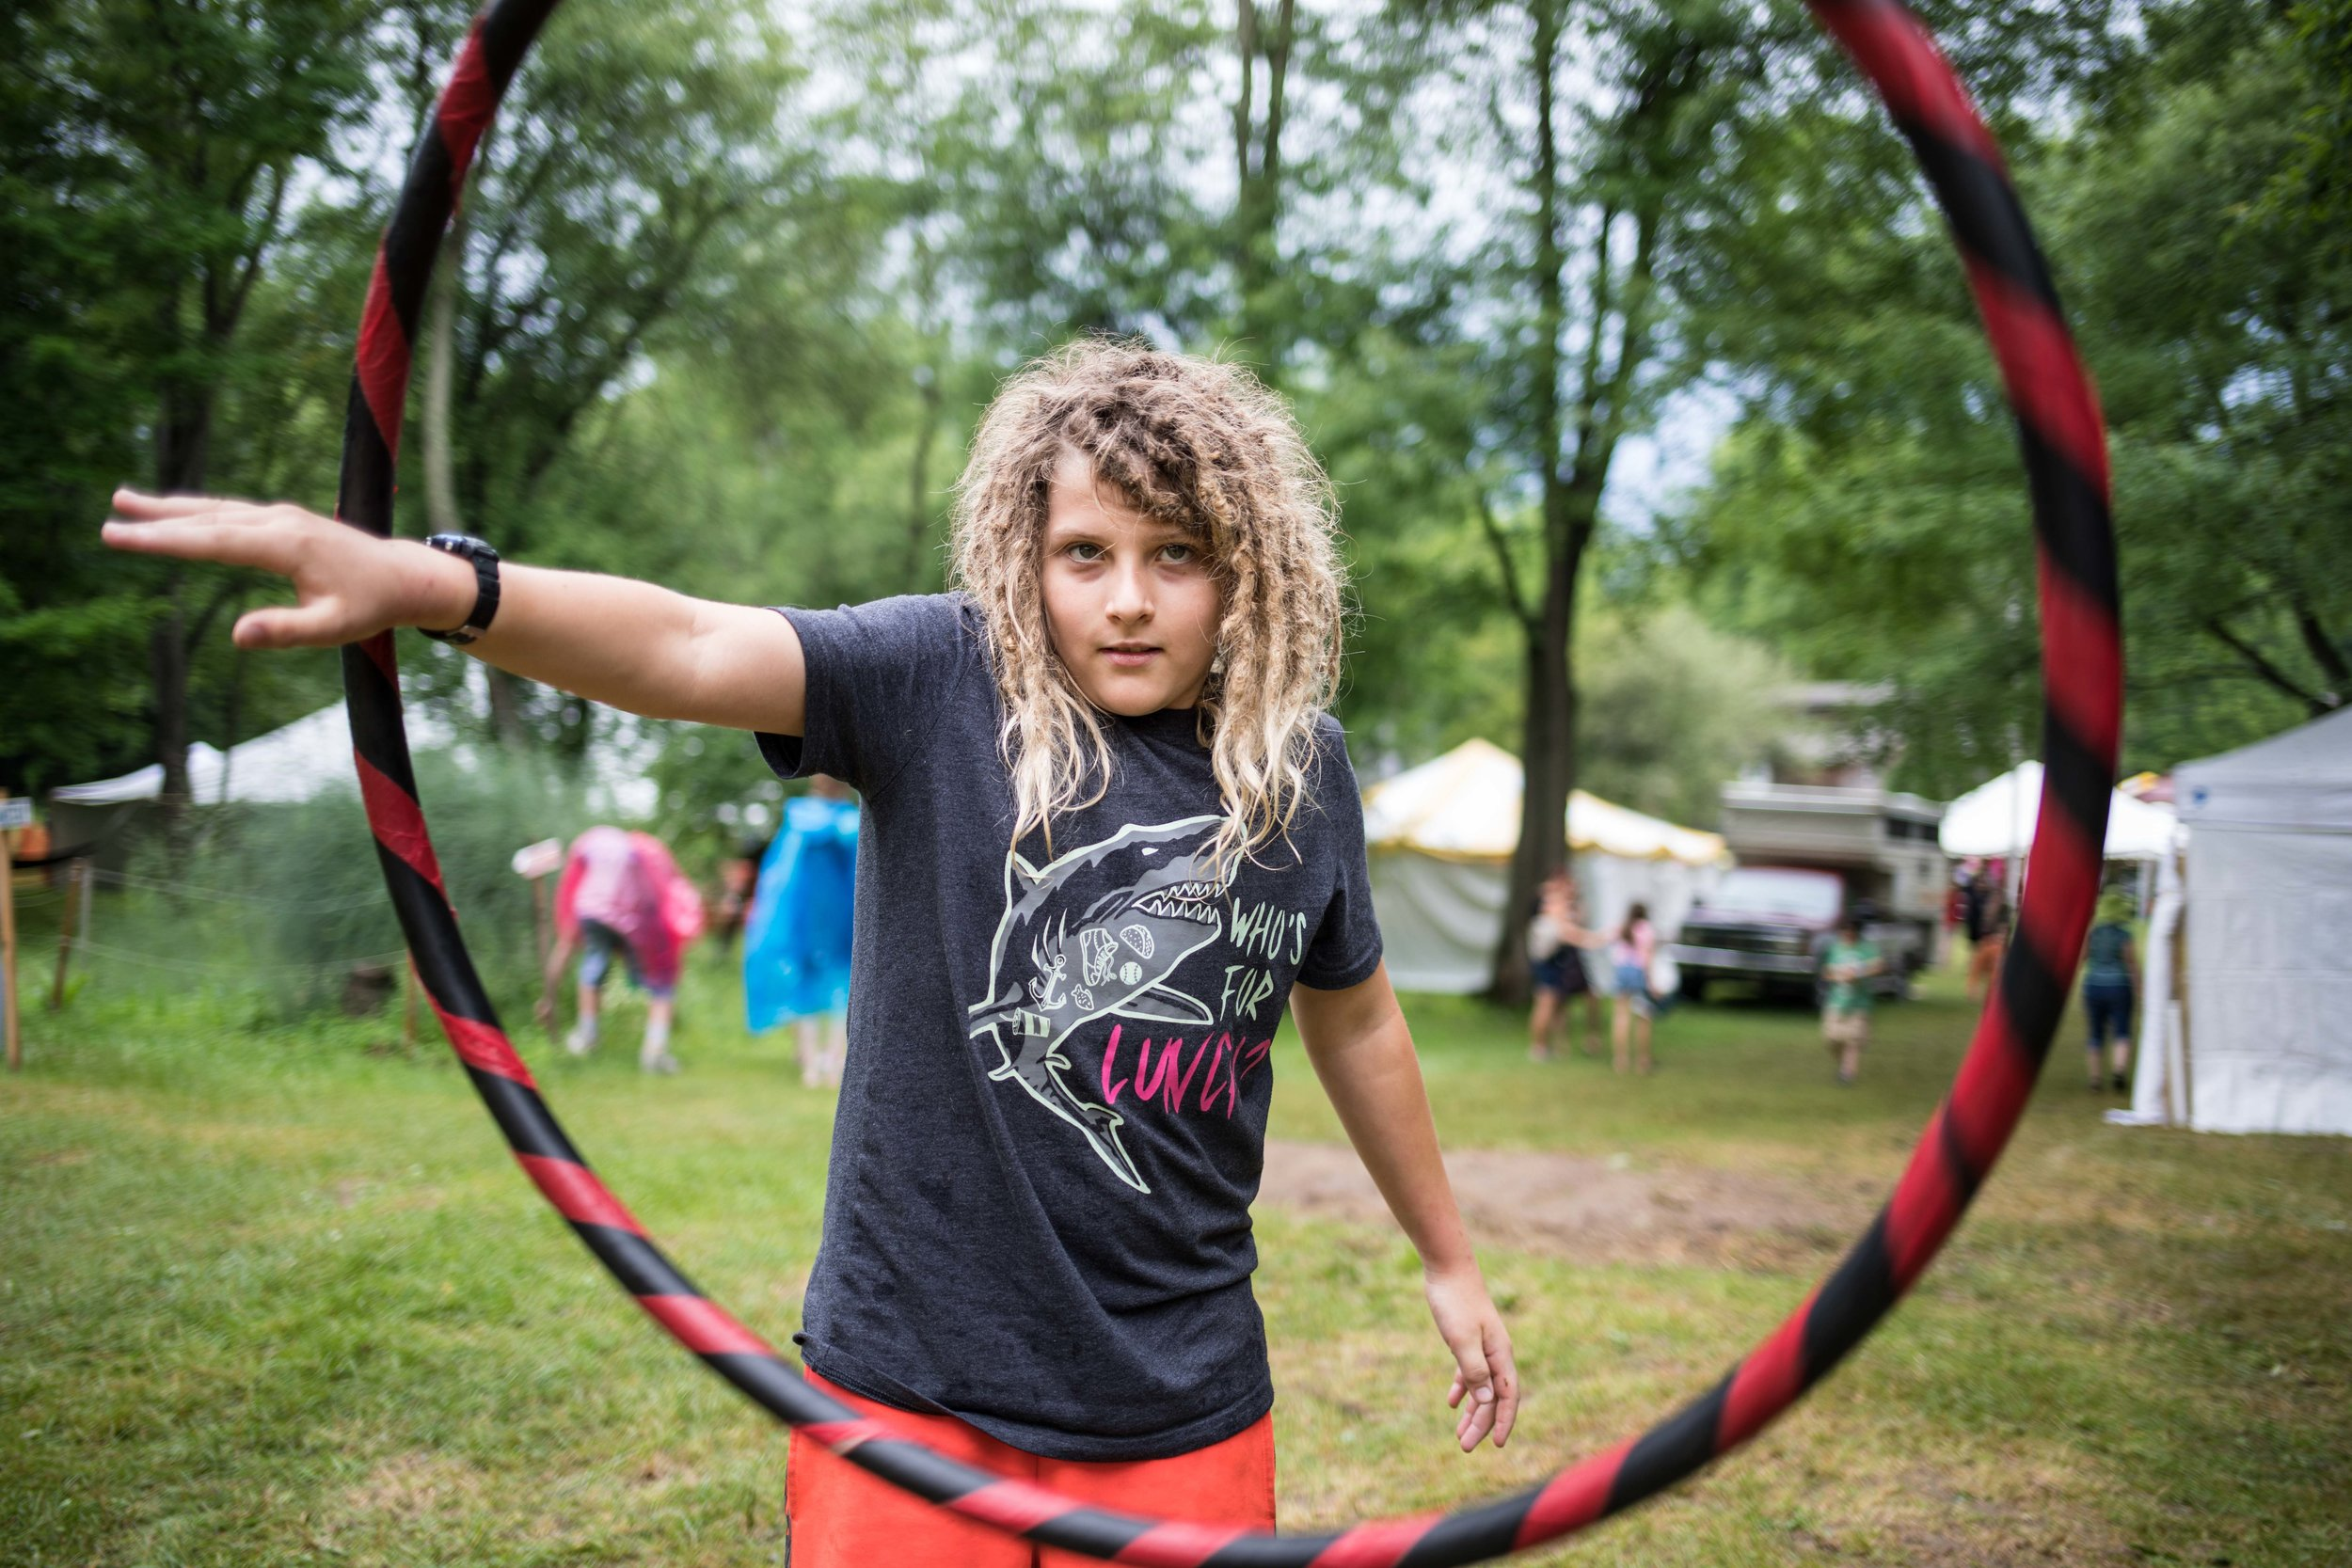 A kid facing the camera spinning a hula hoop in his arms